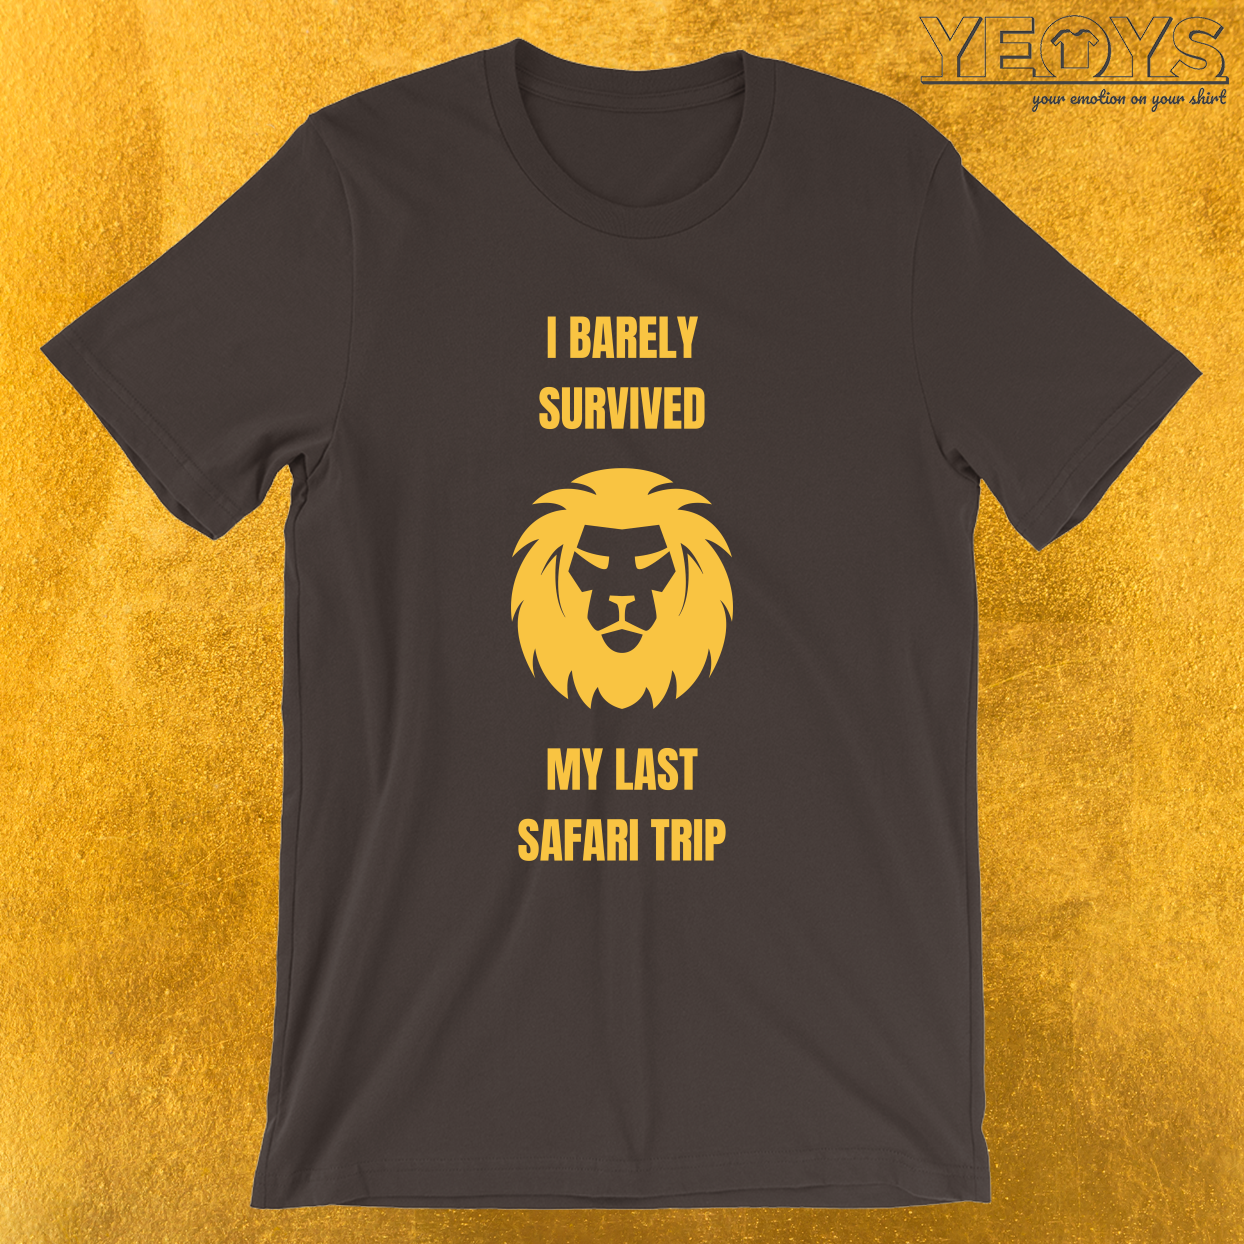 I Barely Survived My Last Safari Trip – Funny Safari Tee